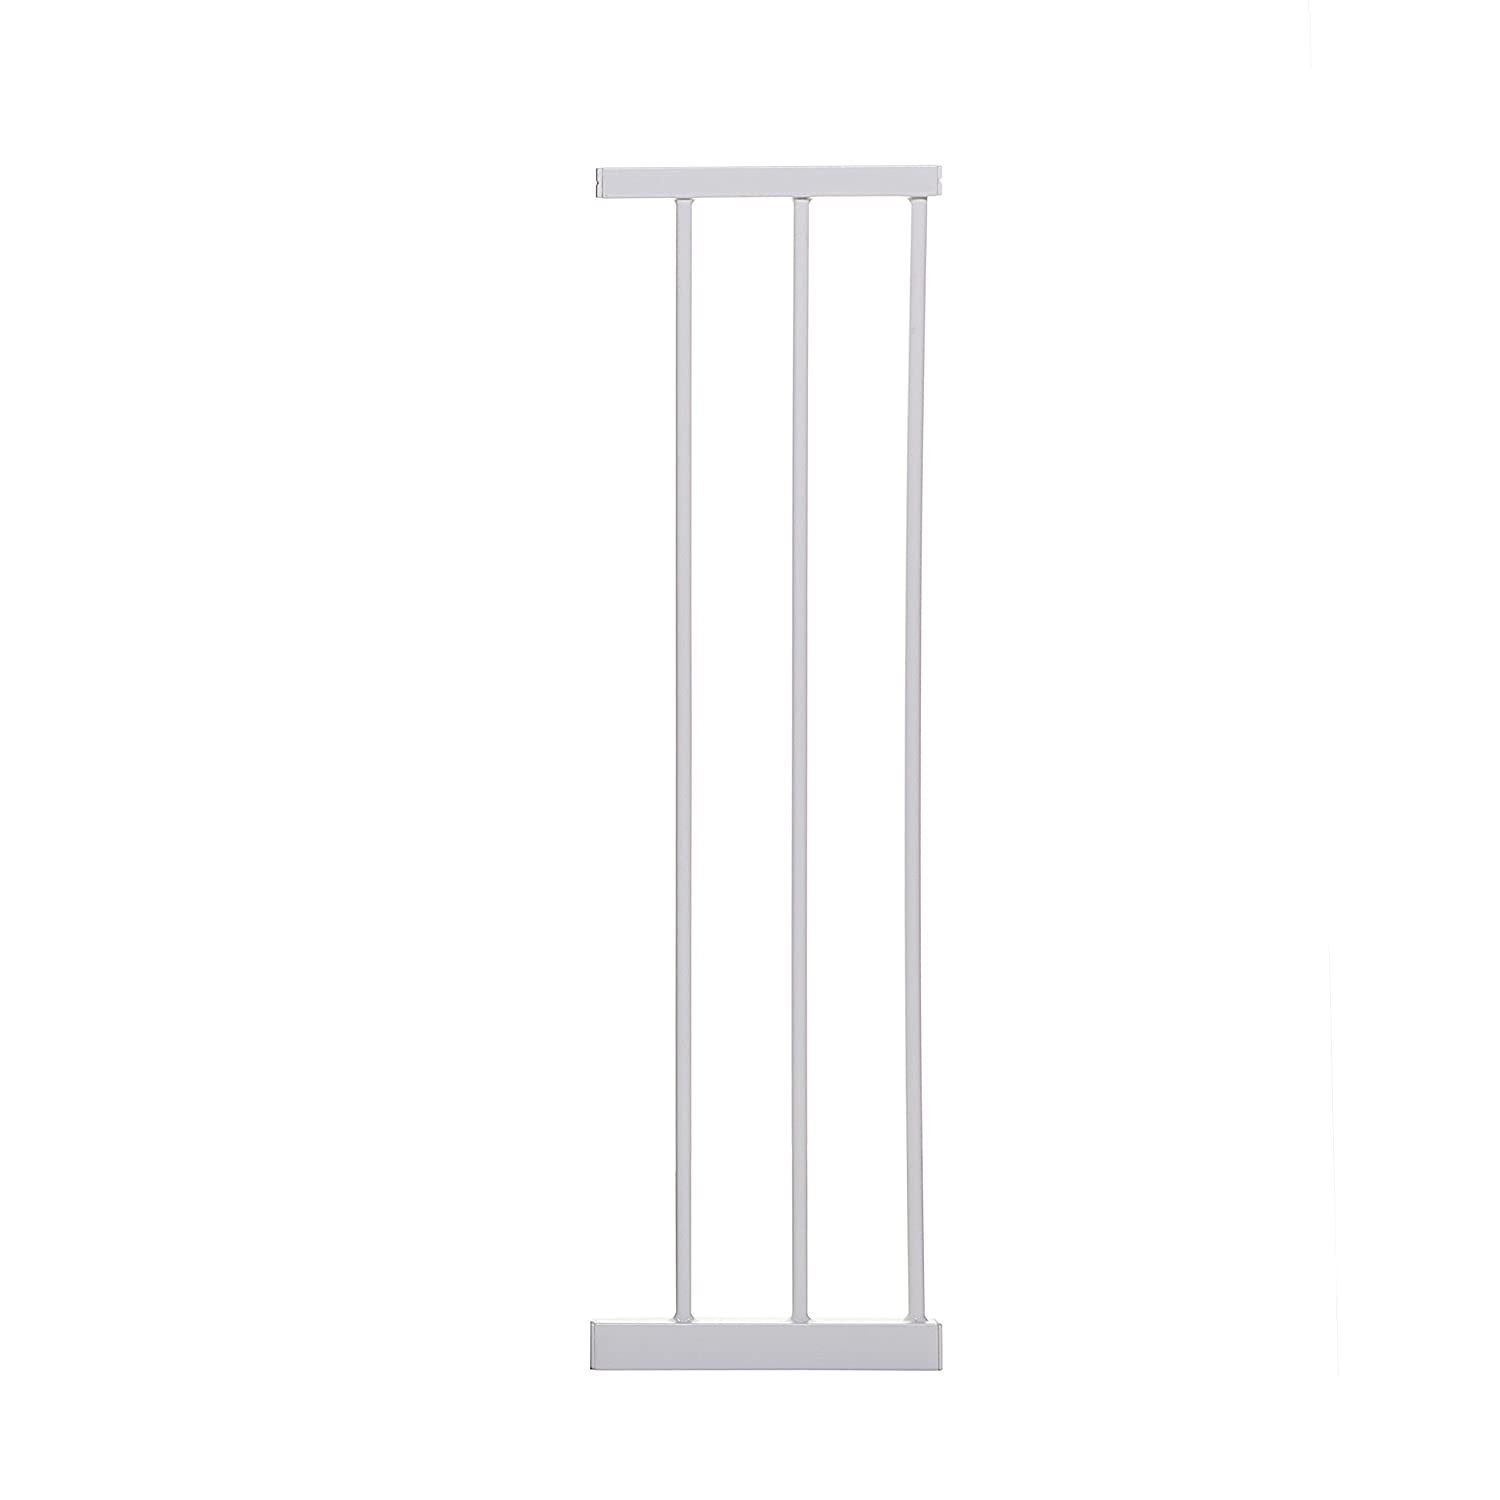 Dreambaby Boston Baby low-pricing Safety Gate Extensions 8.25 - overseas inches Wide